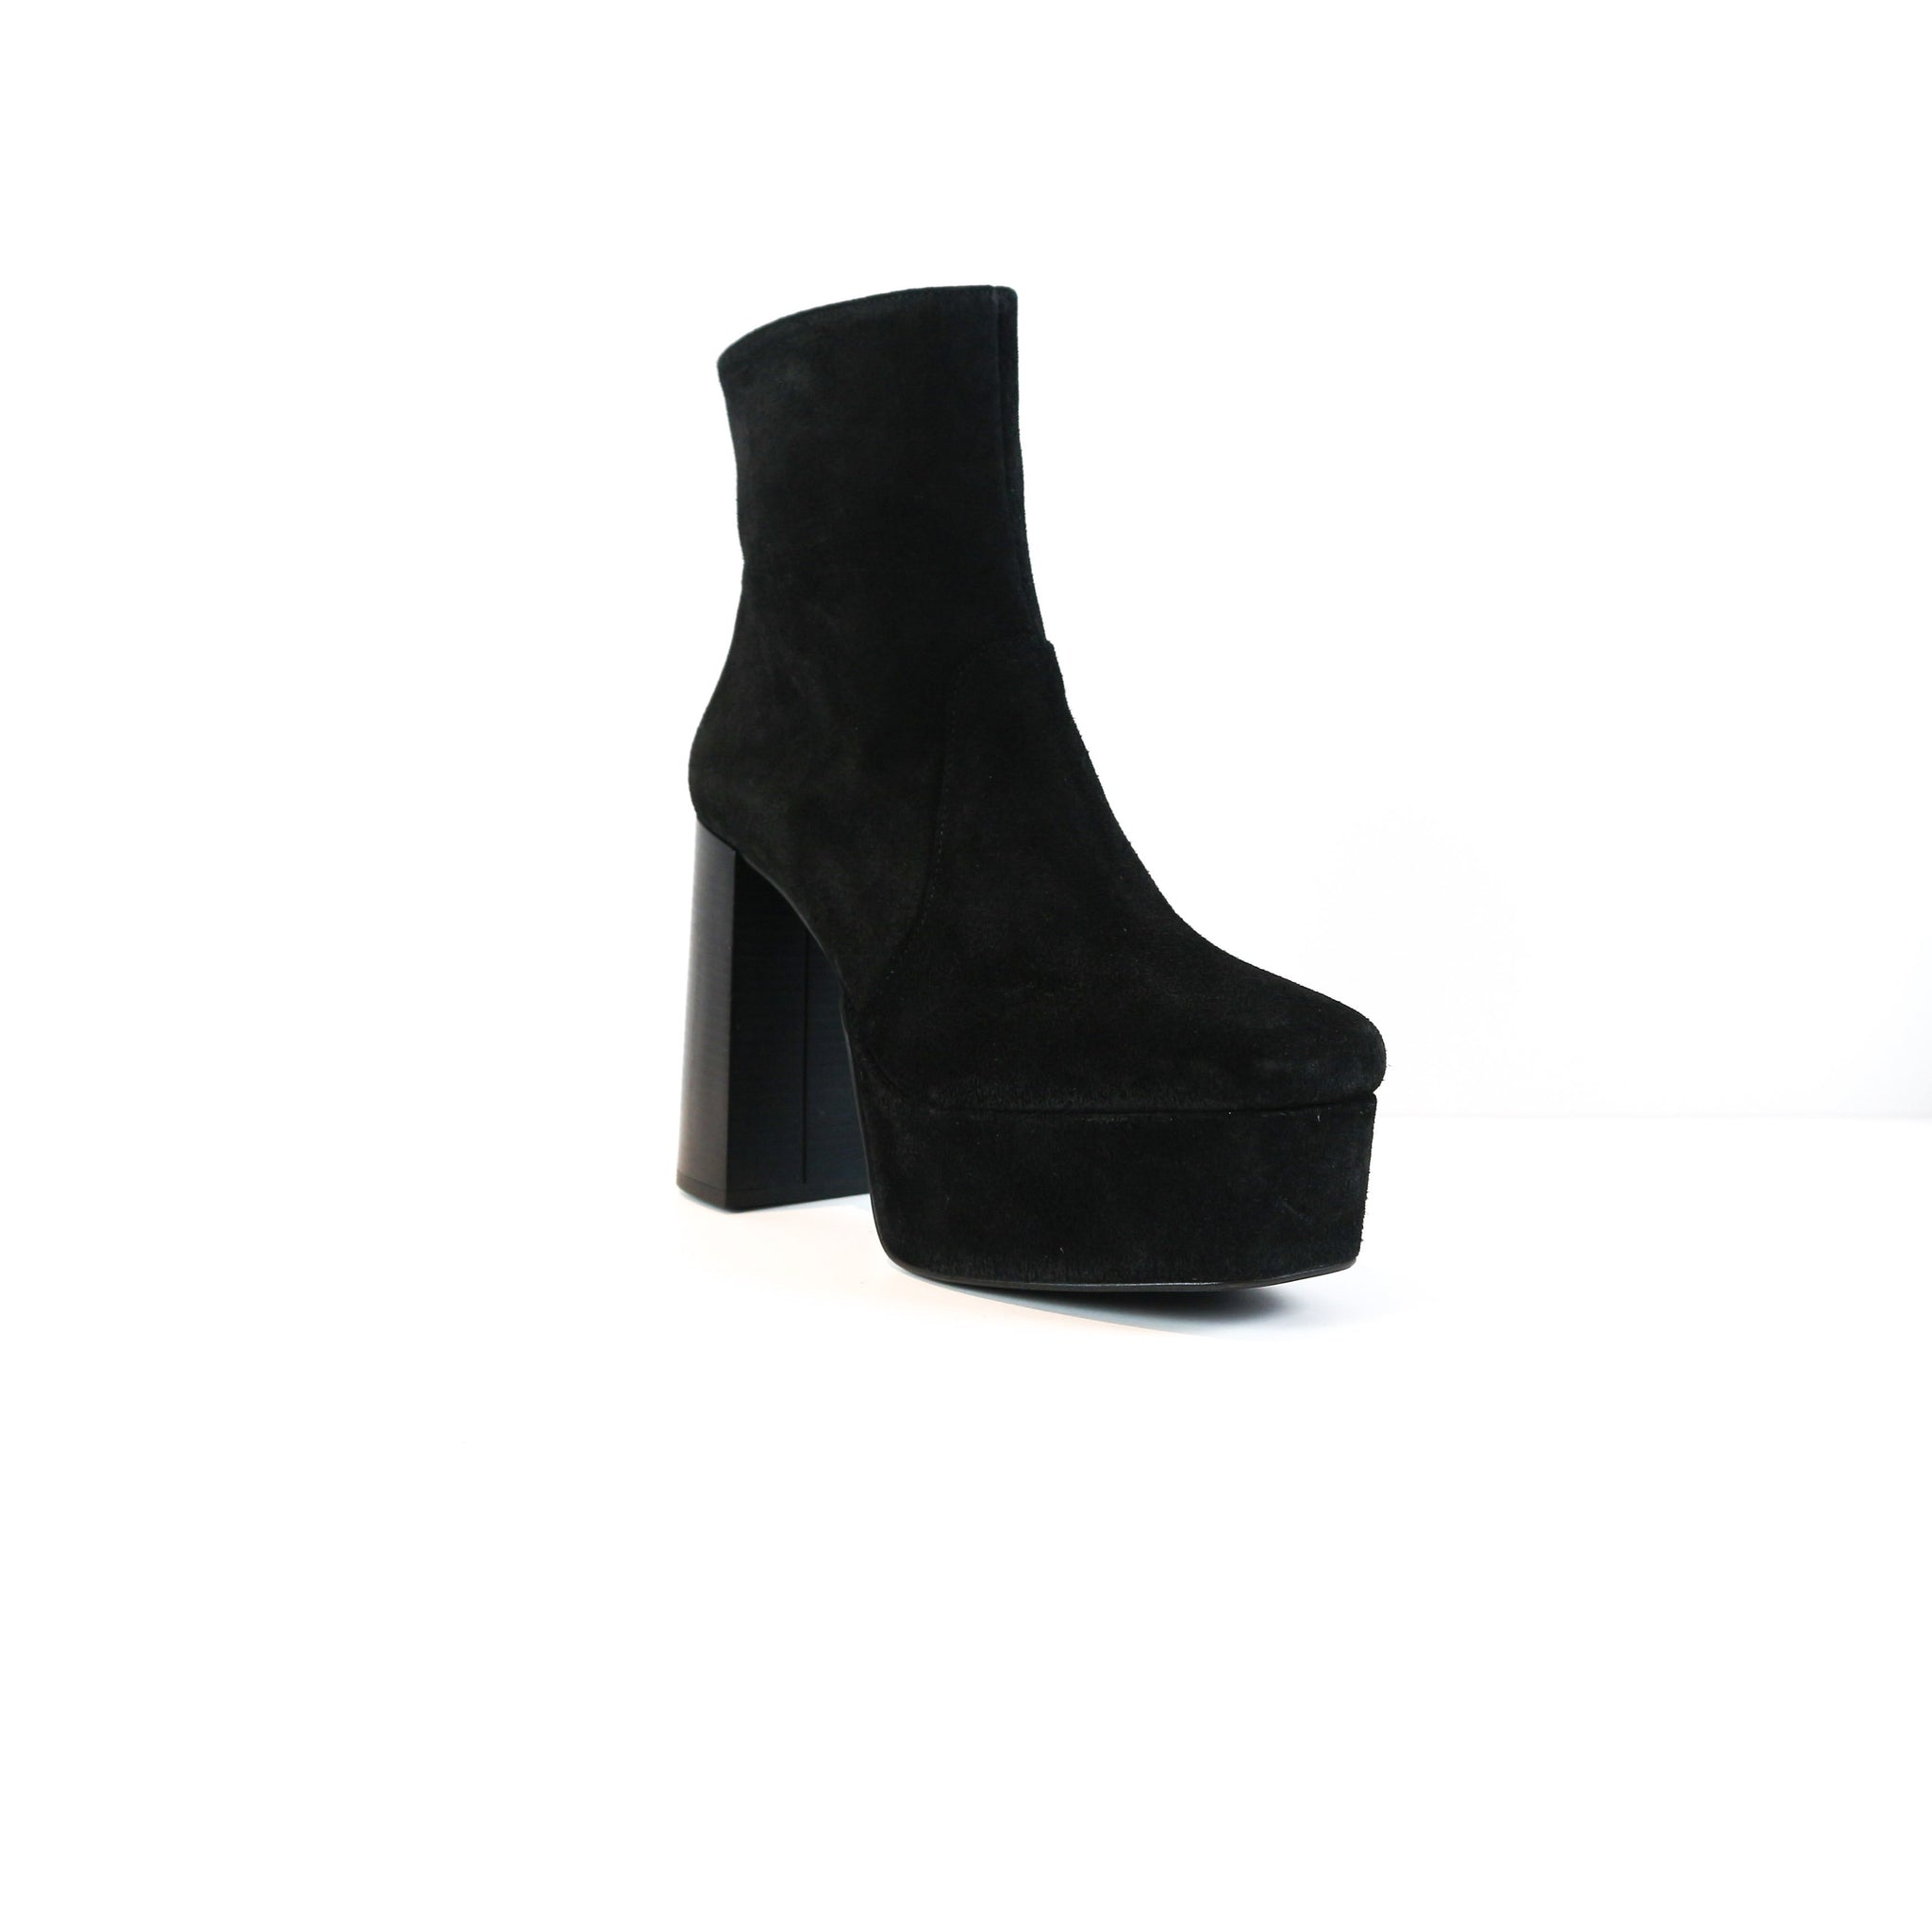 ANDRES | BLACK SUEDE PLATFORM BOOTS - TrystShoes